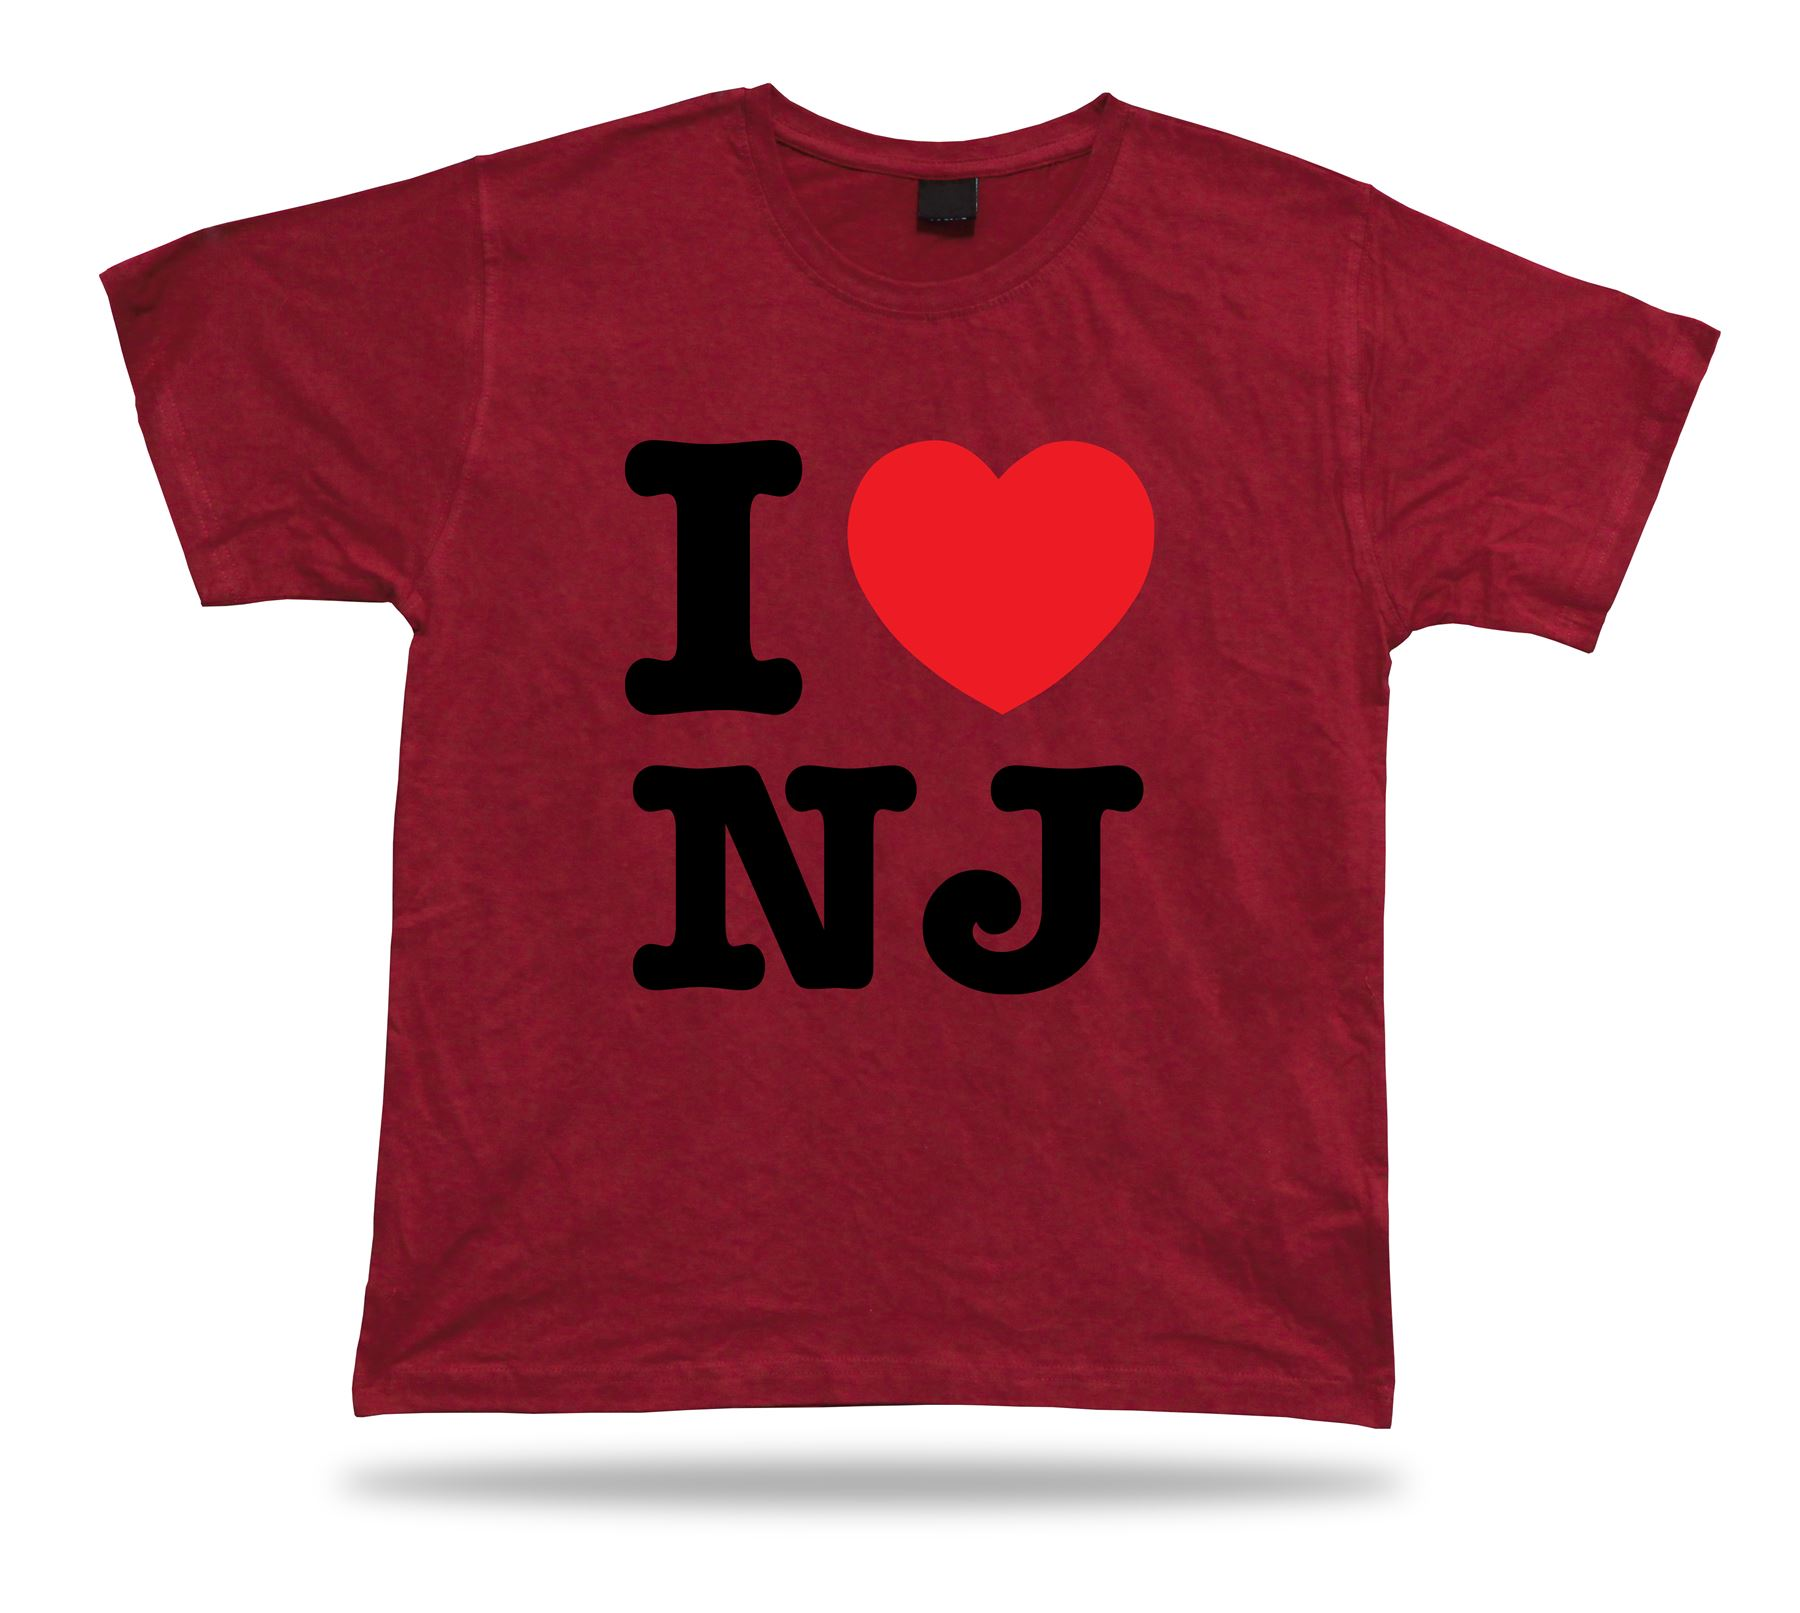 I love nj new jersey t shirt heart garden newark devil for The garden design team newark